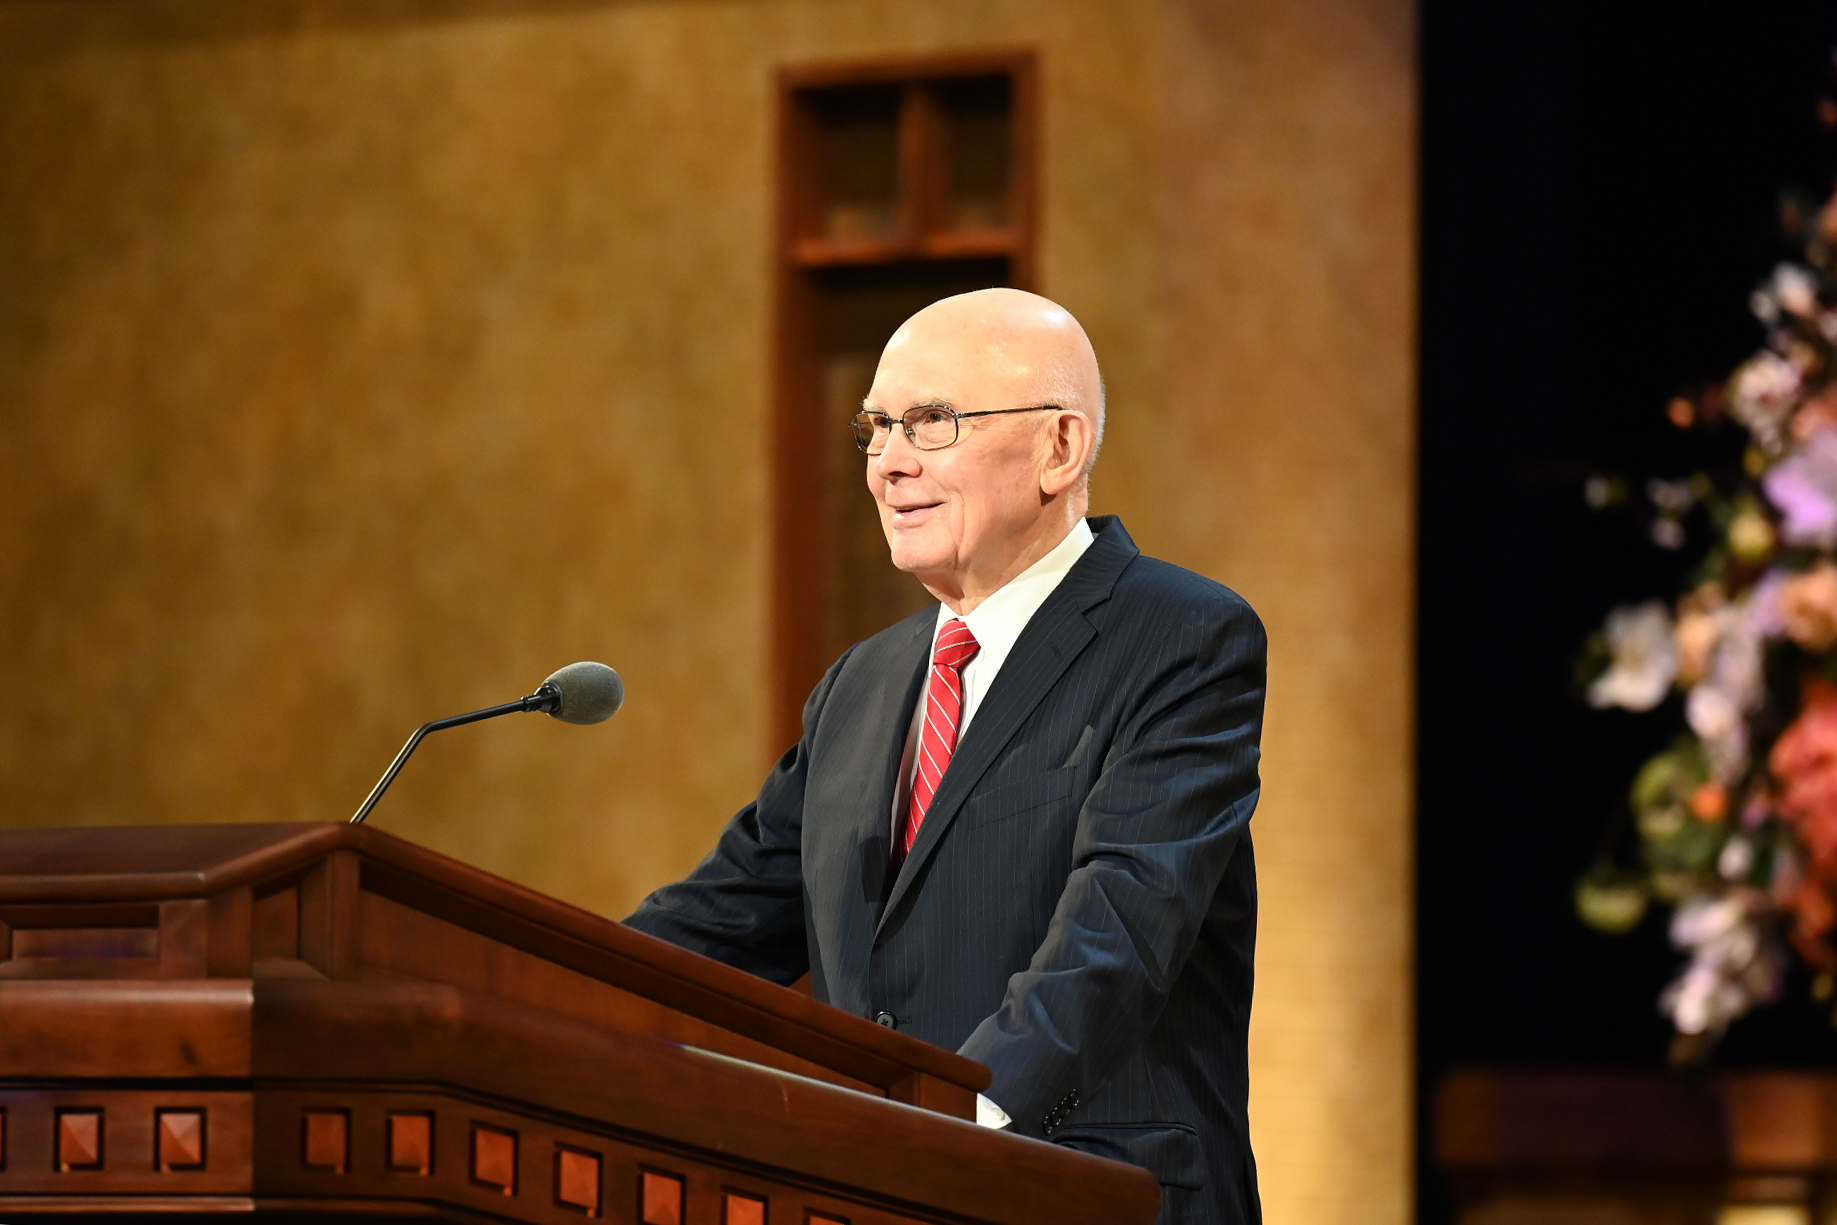 President Dallin H. Oaks, first counselor in the First Presidency, conducts the Sunday morning session of The Church of Jesus Christ of Latter-day Saints' 191st Annual General Conference in Salt Lake City on April 4, 2021.